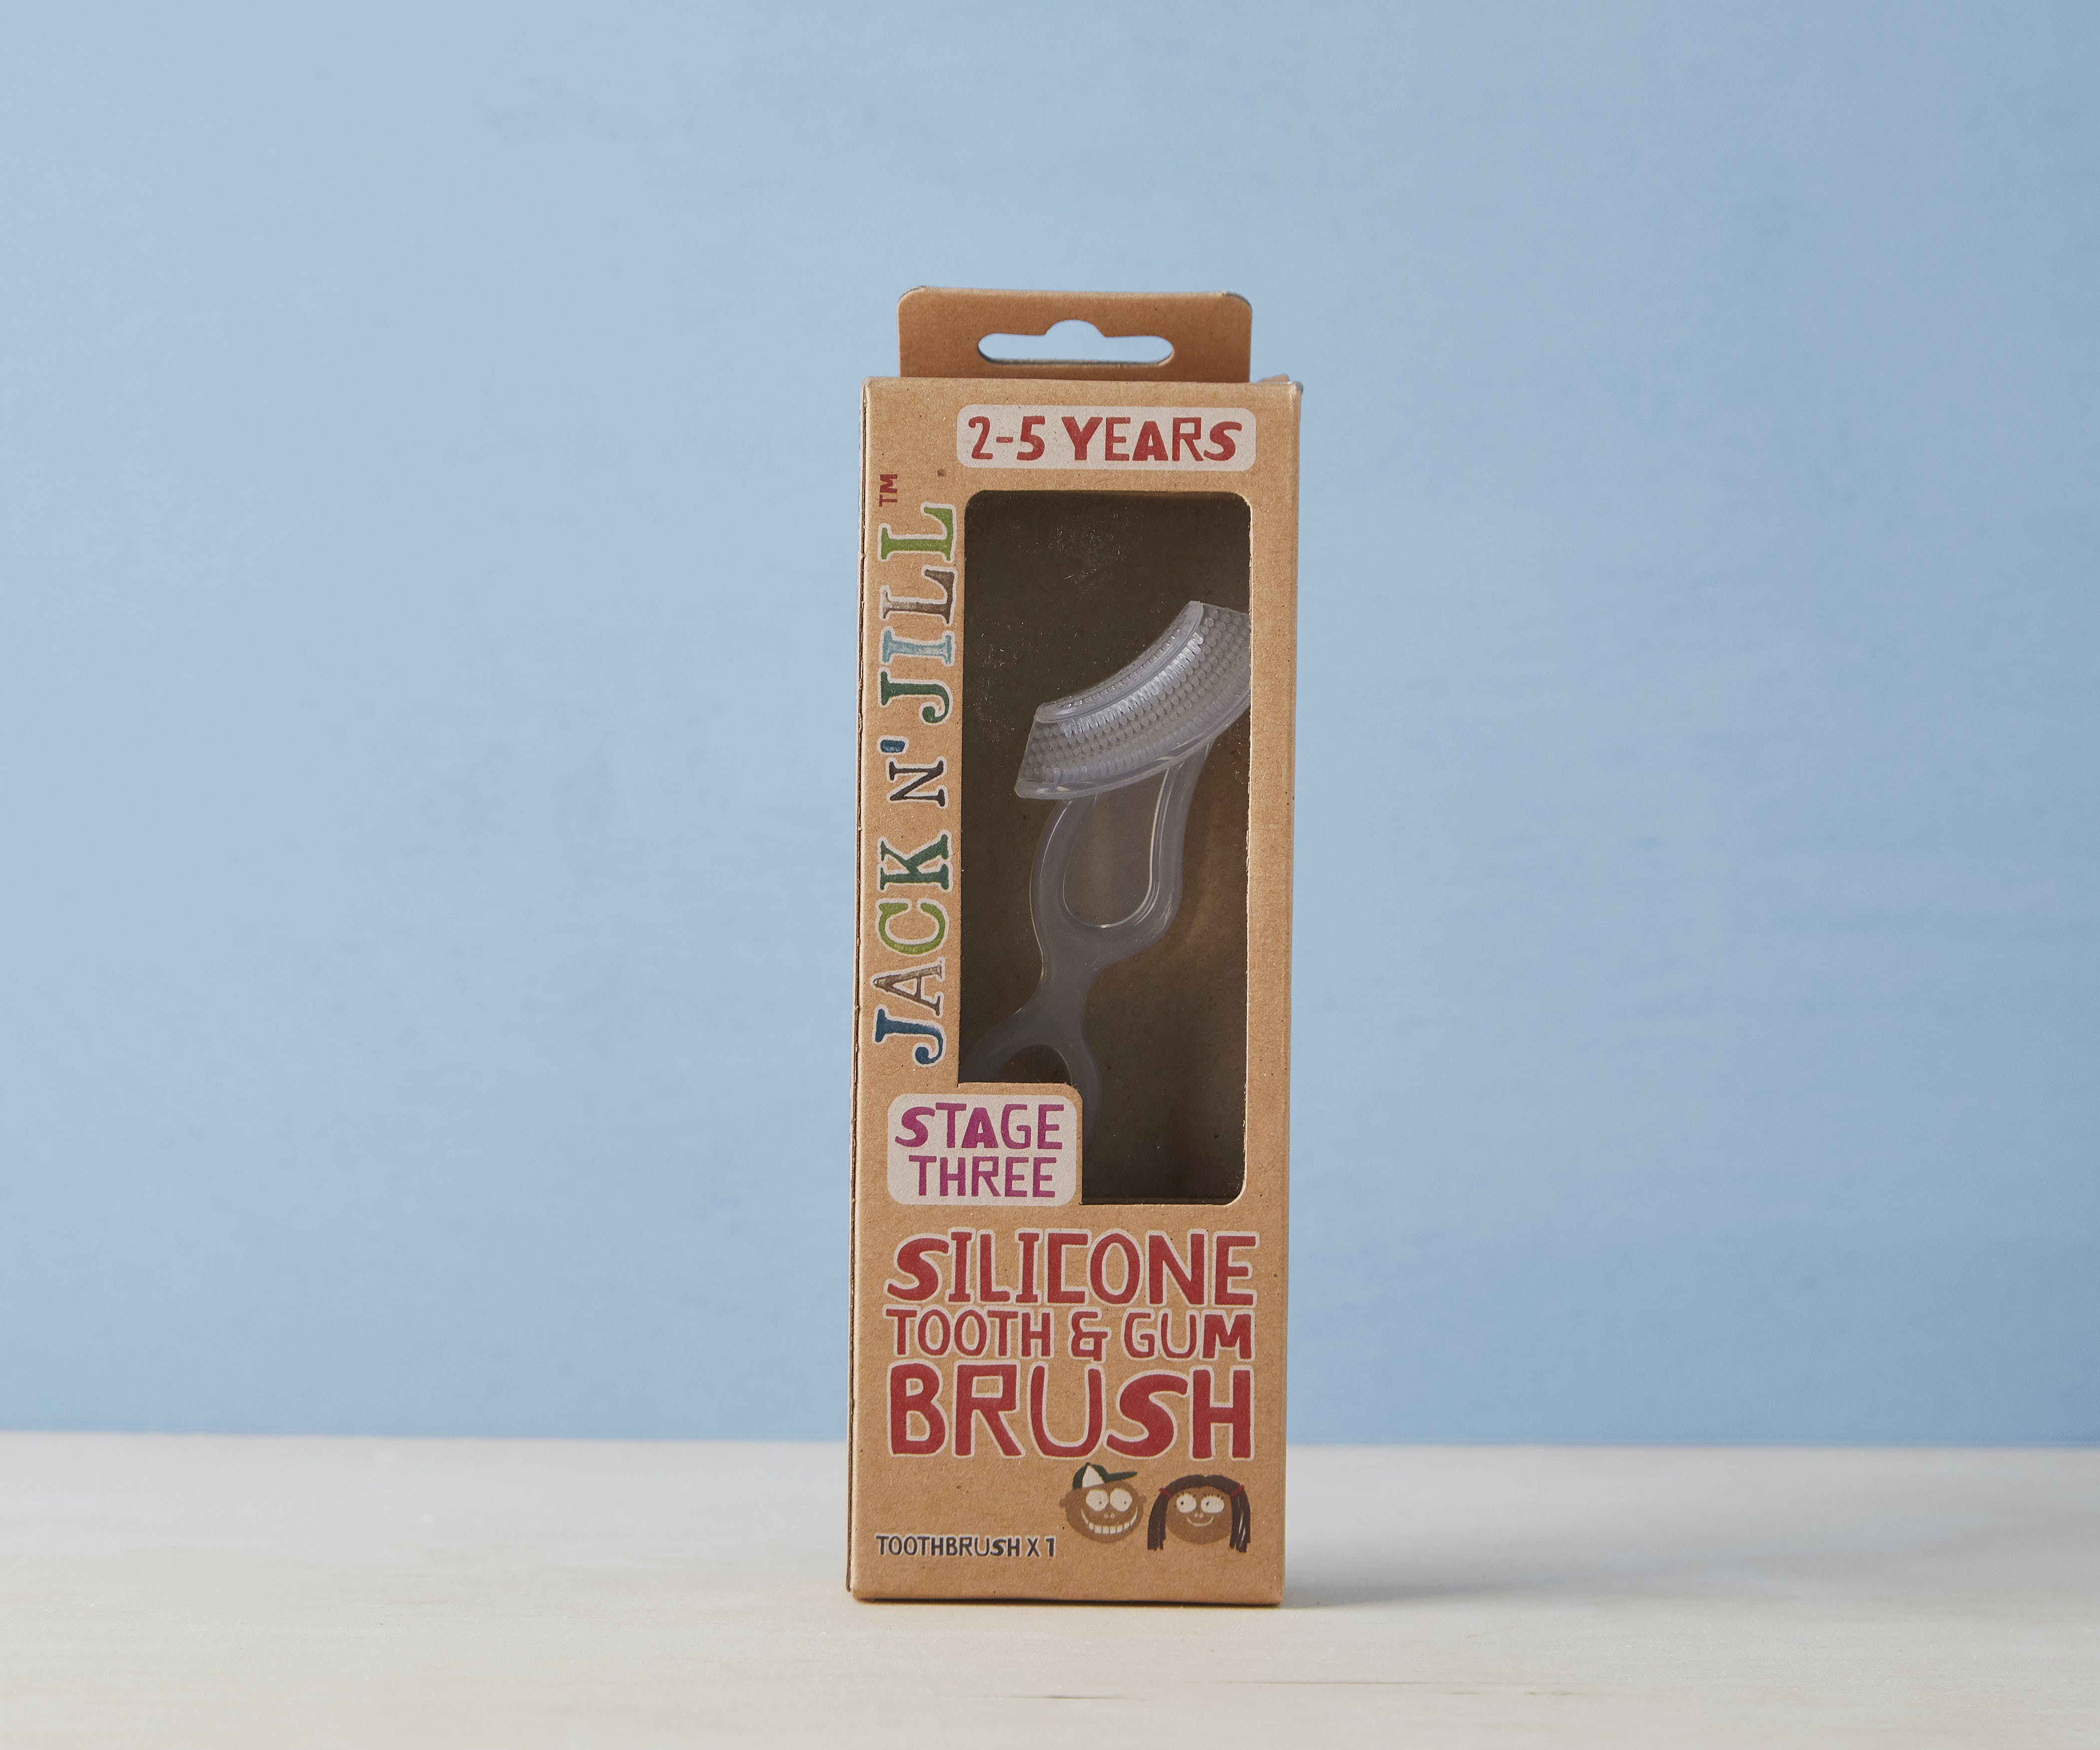 Baby Silicone Tooth & Gum Brush - Stage 3 (2-5 Yrs)